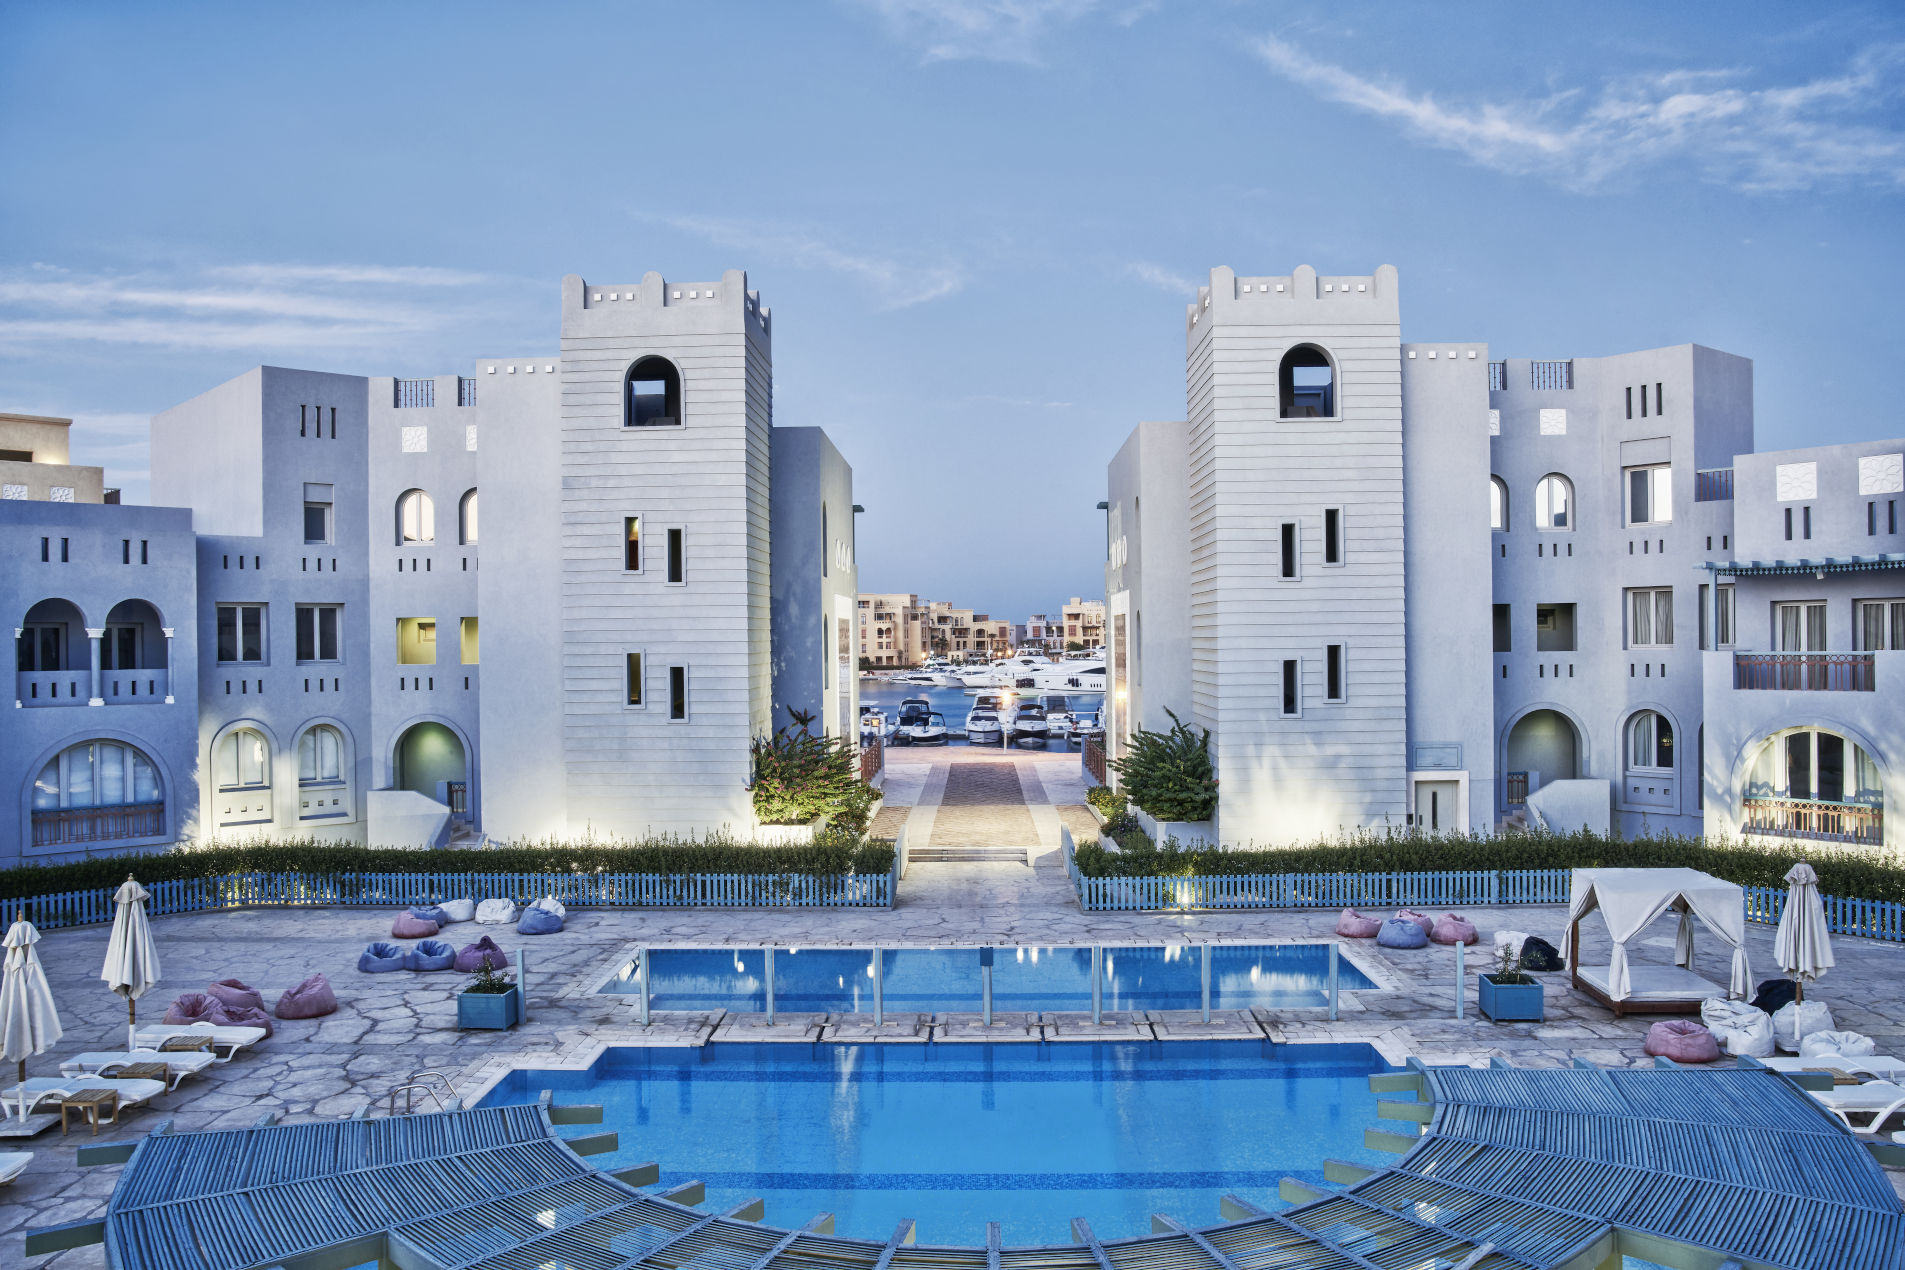 Fanadir Hotel El Gouna pool and facilities Overview